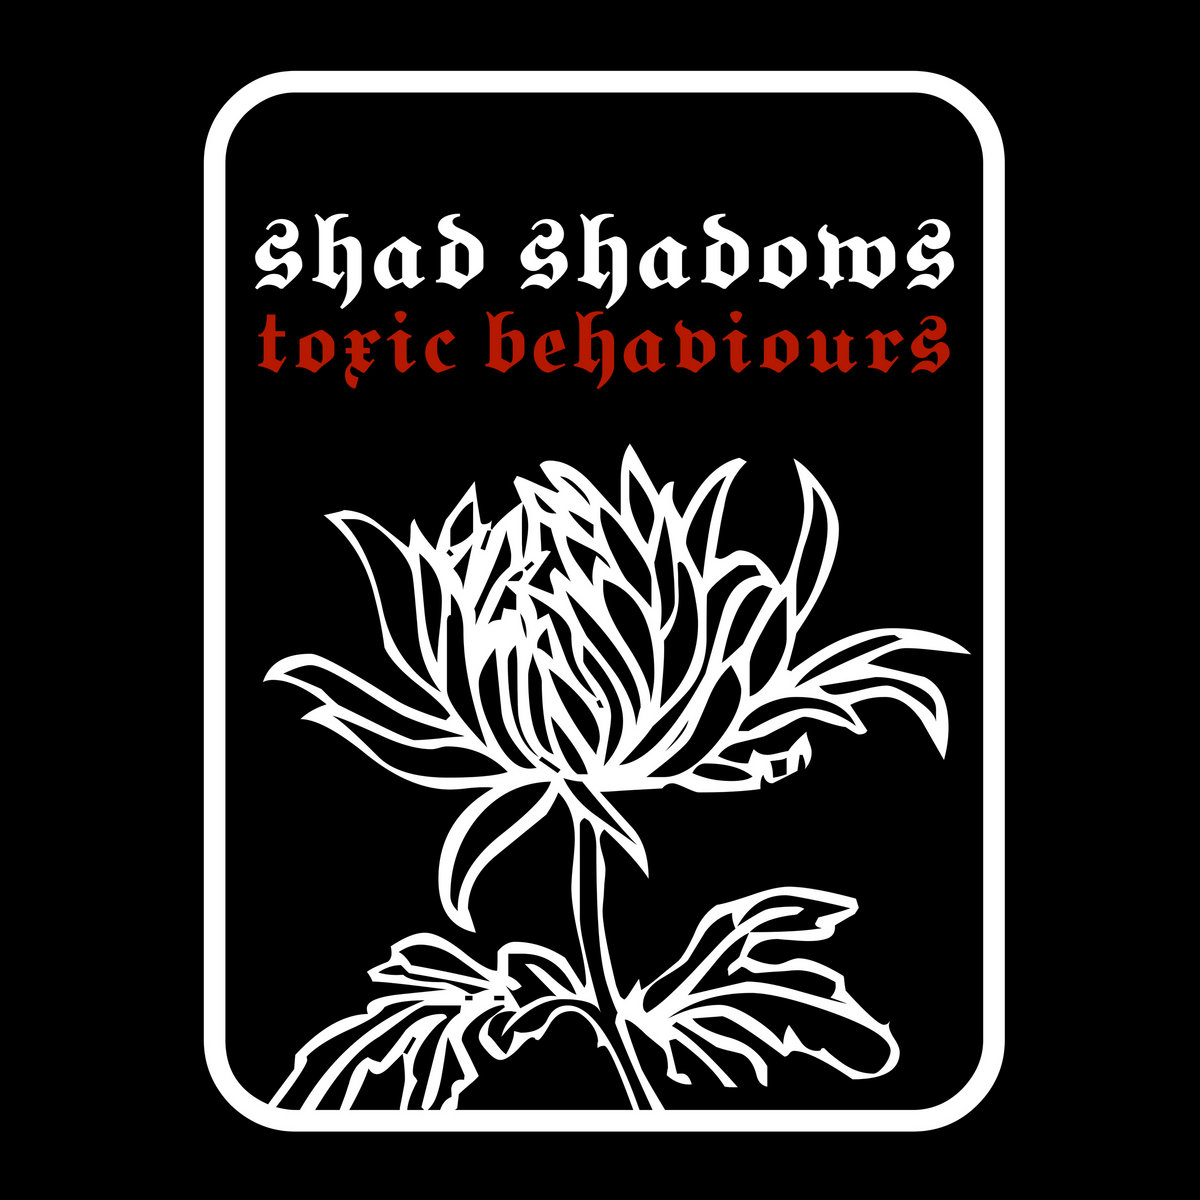 Shad Shadows - Toxic Behaviours (LP; 2020)